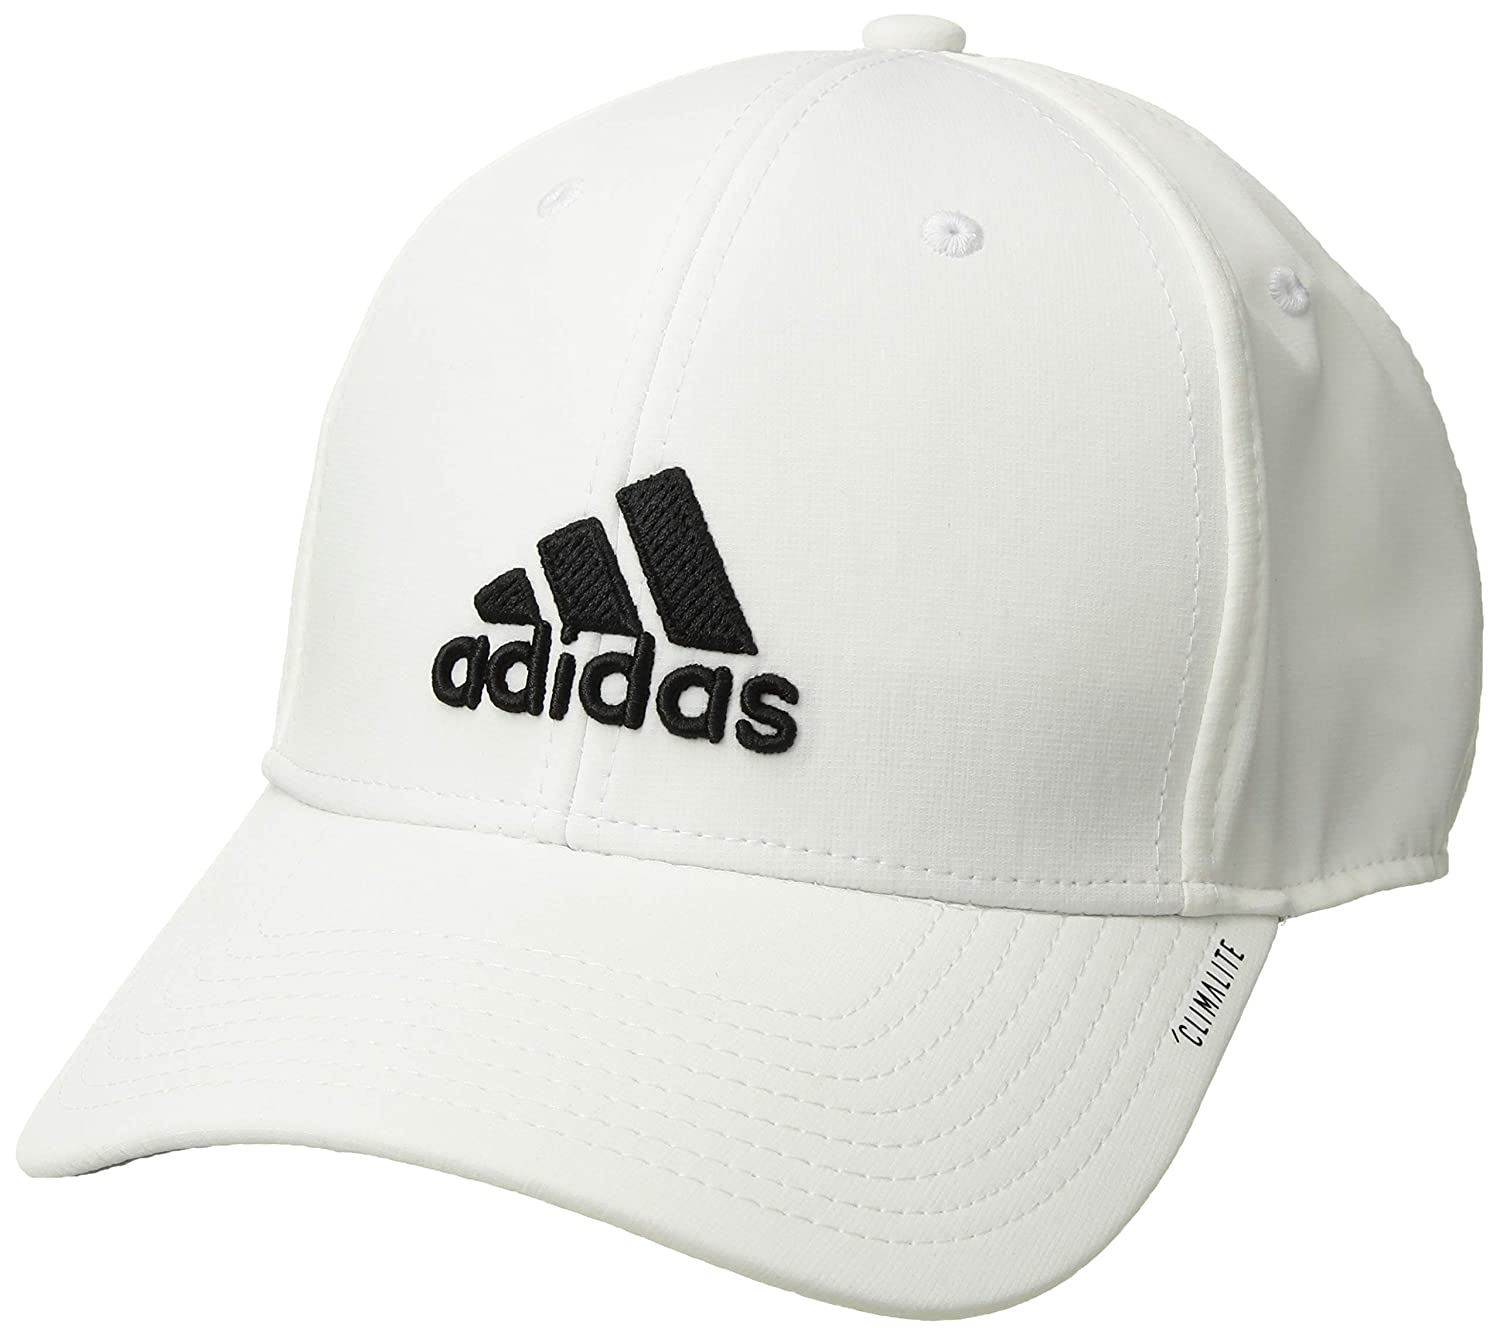 6d6593090f9 Amazon.com  adidas Men s Gameday Stretch Fit Structured Cap  Sports    Outdoors